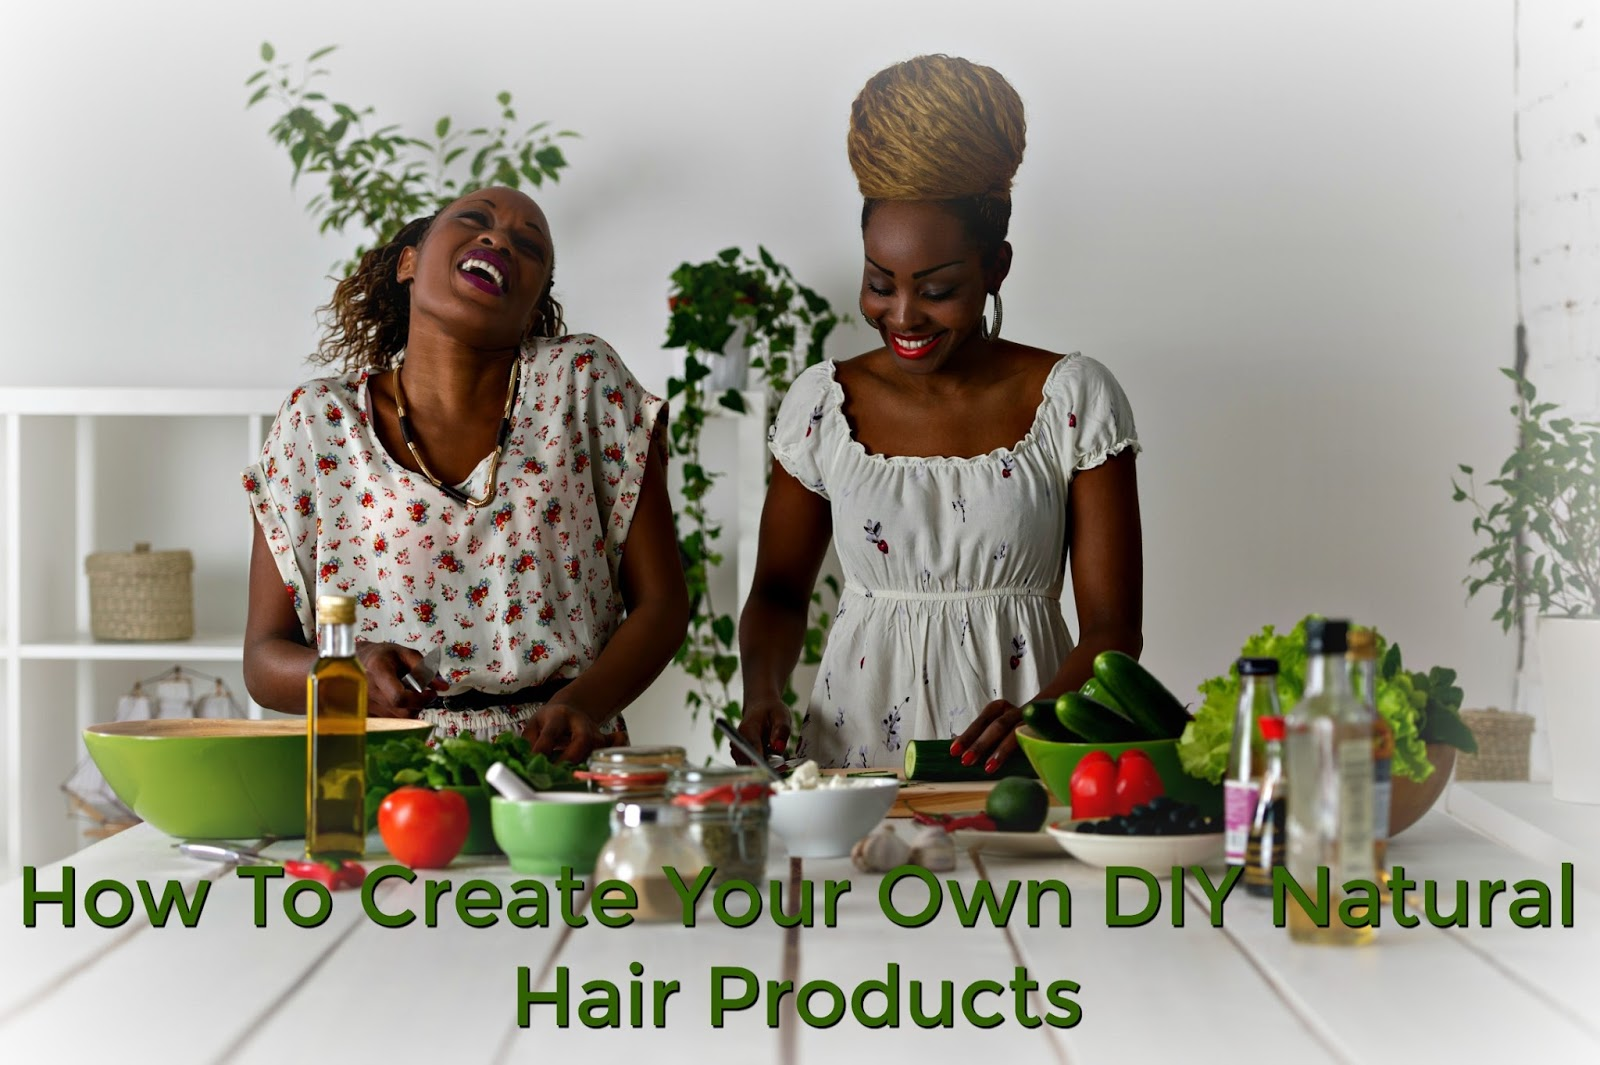 How To Create Your Own DIY Natural Hair Products